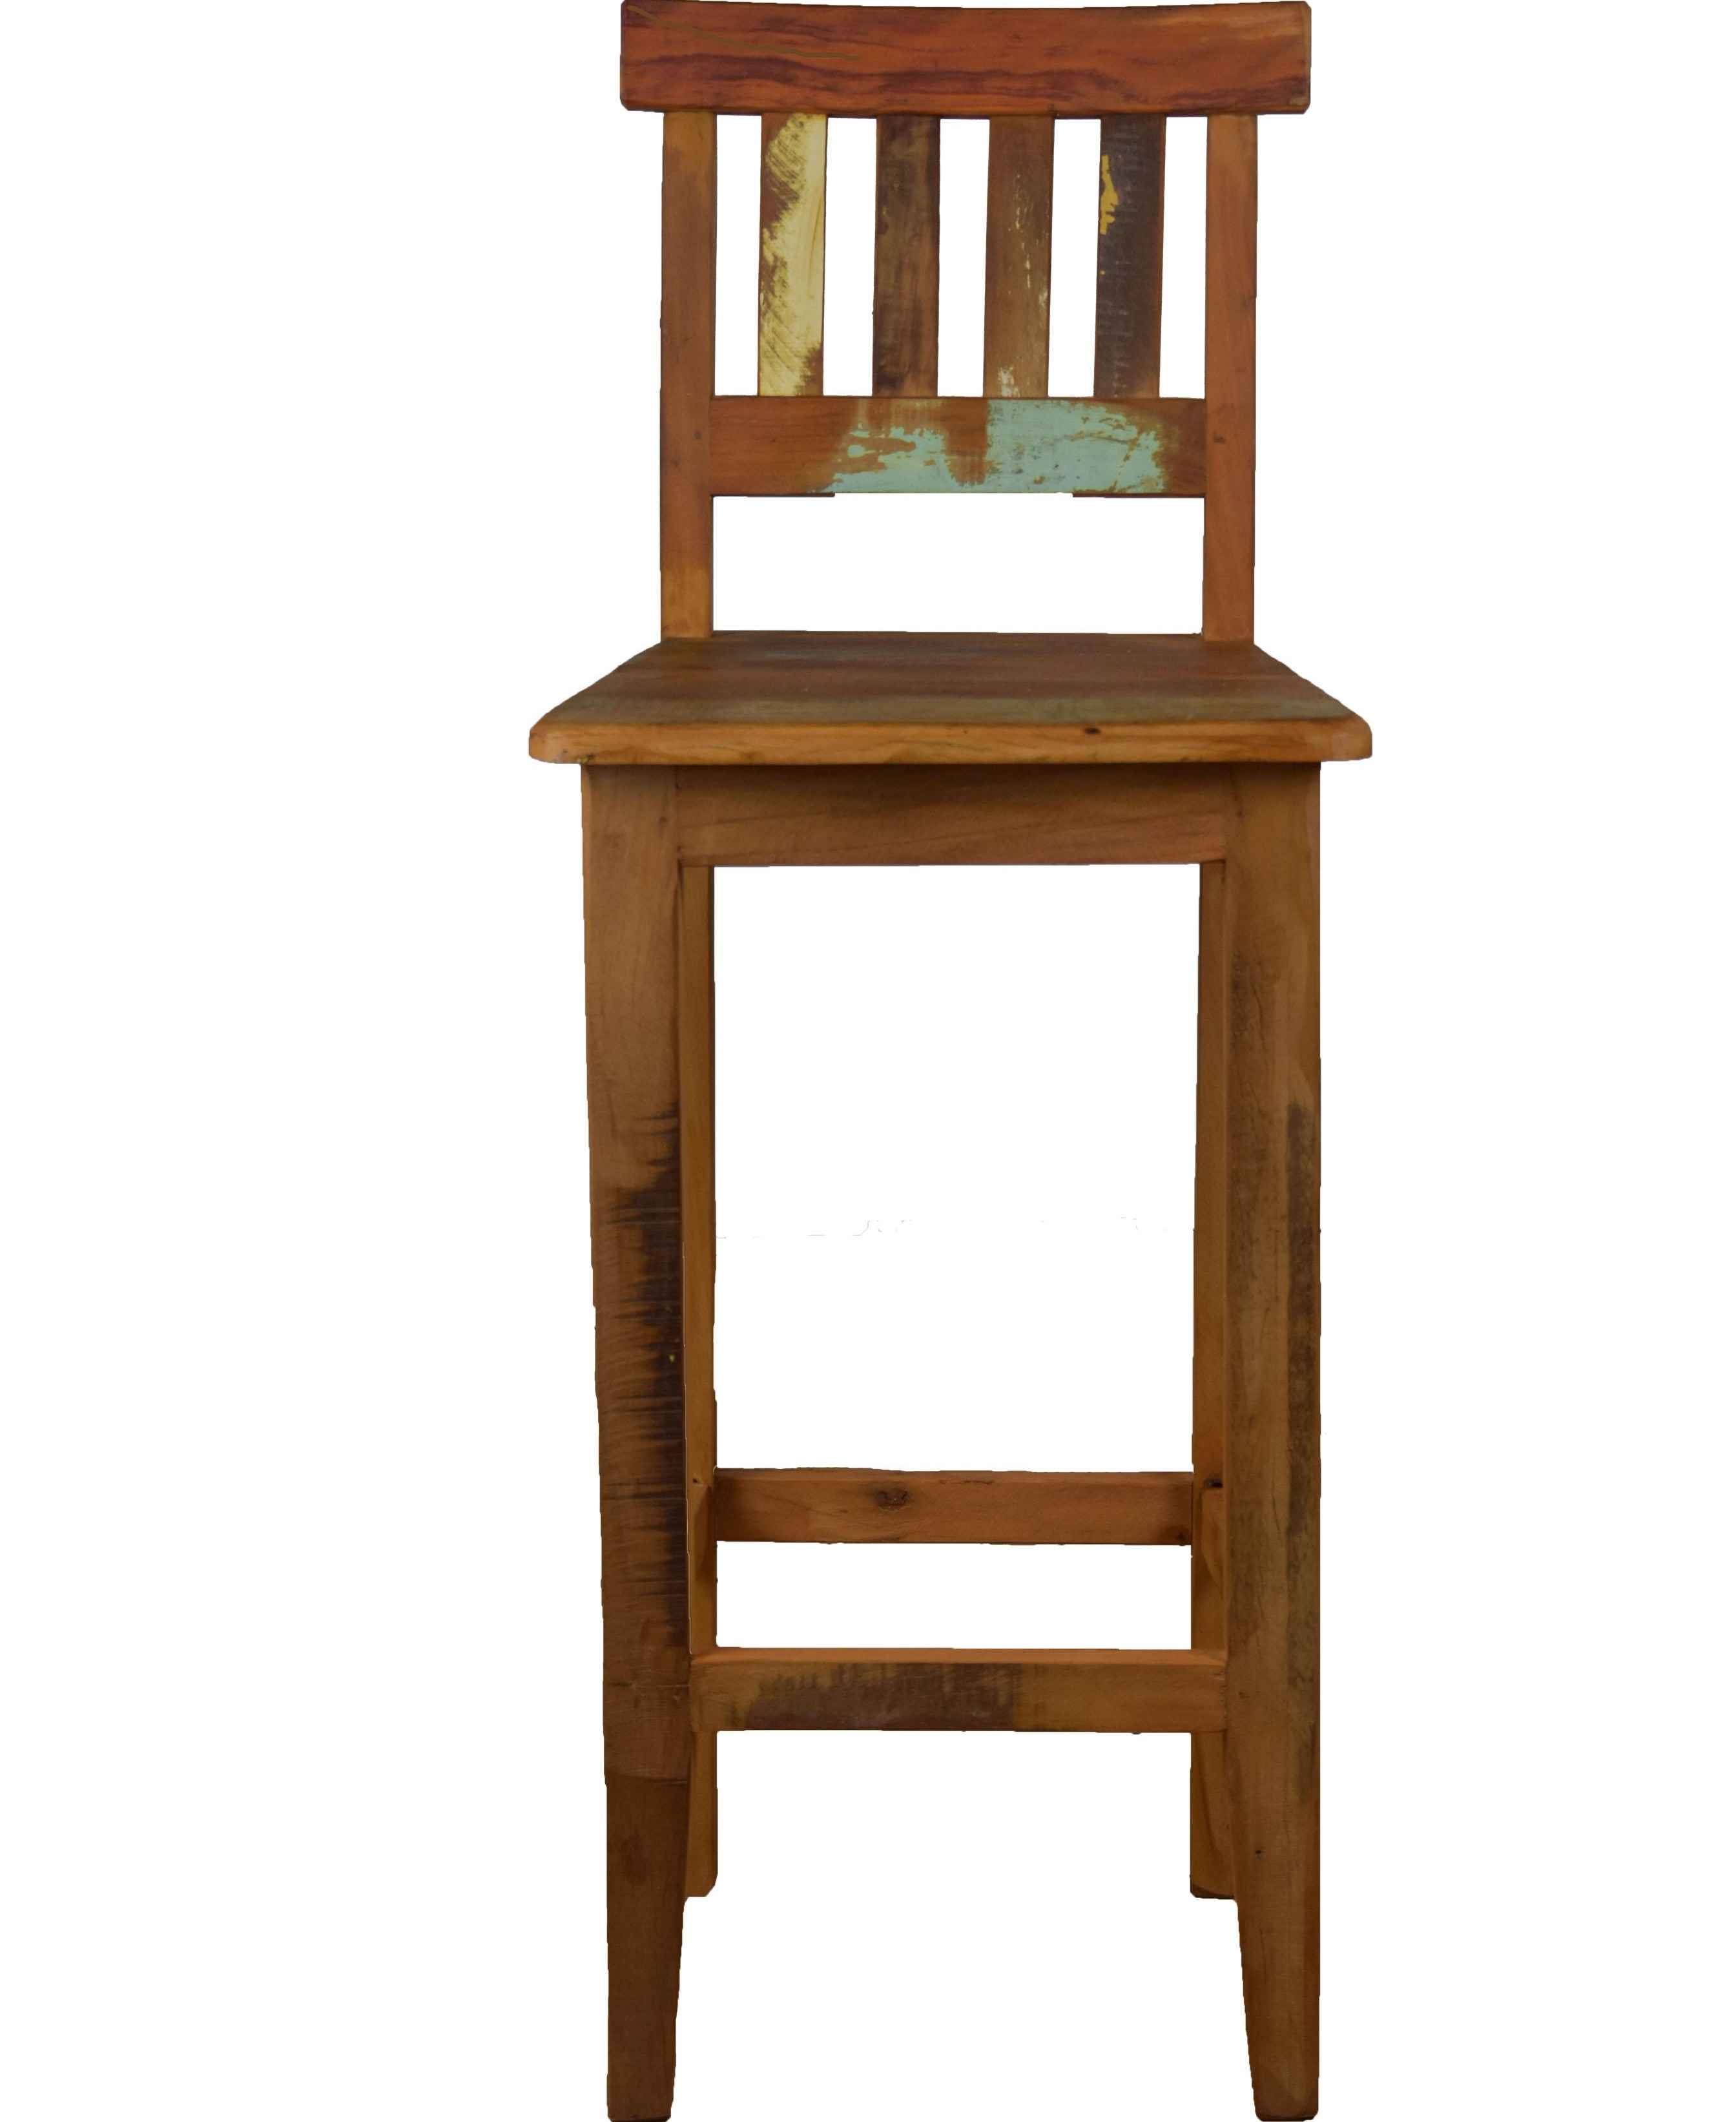 Reclaimed Wood Bar Stool Chairish | Reclaimed Wood Stairs For Sale | Stair Railing | Wooden | Staircase Makeover | Handrail | Van Gieson